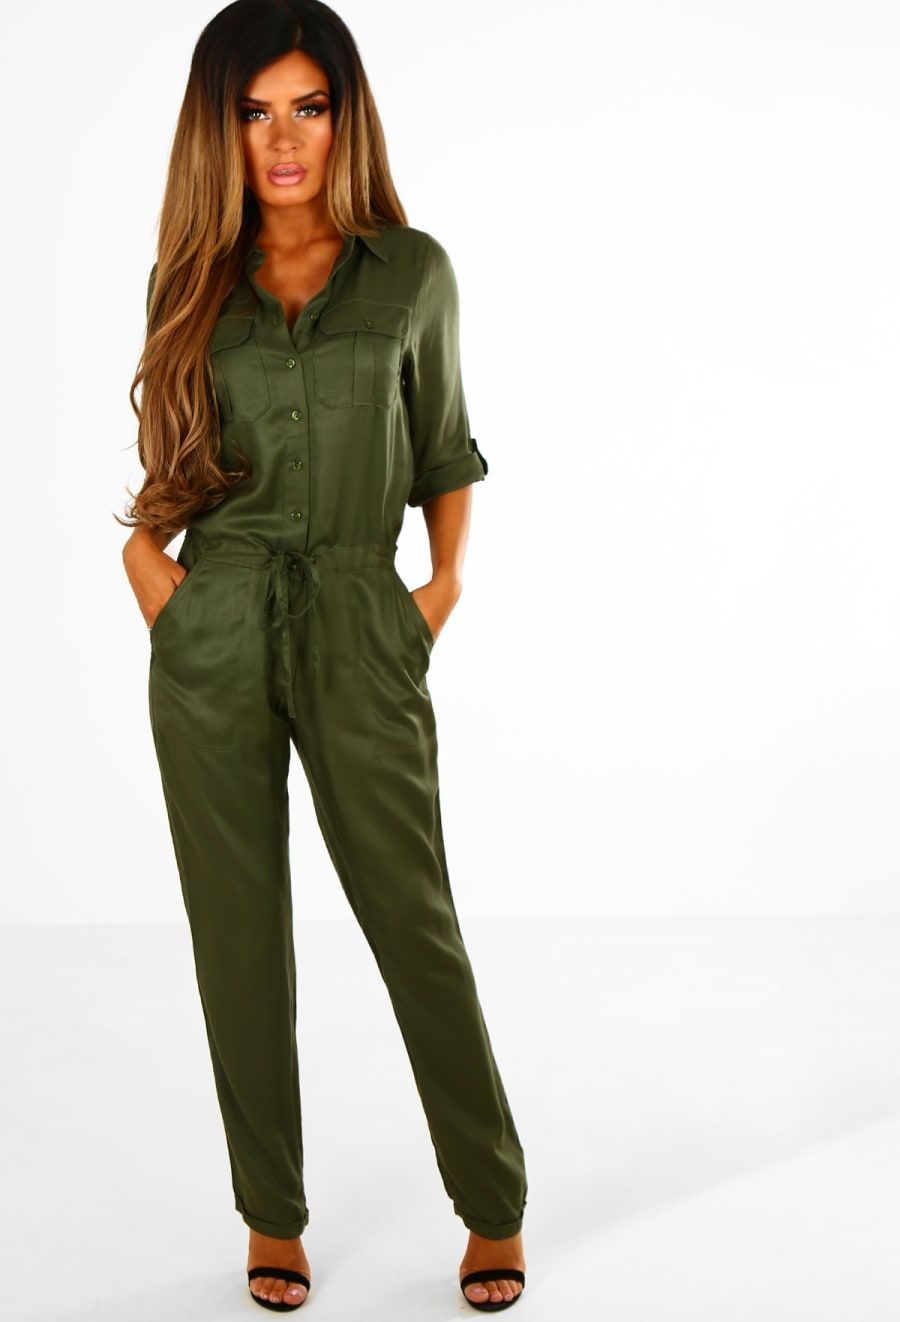 fc8480dd88a5 Persuade Me Khaki Button Up Utility Jumpsuit - 8